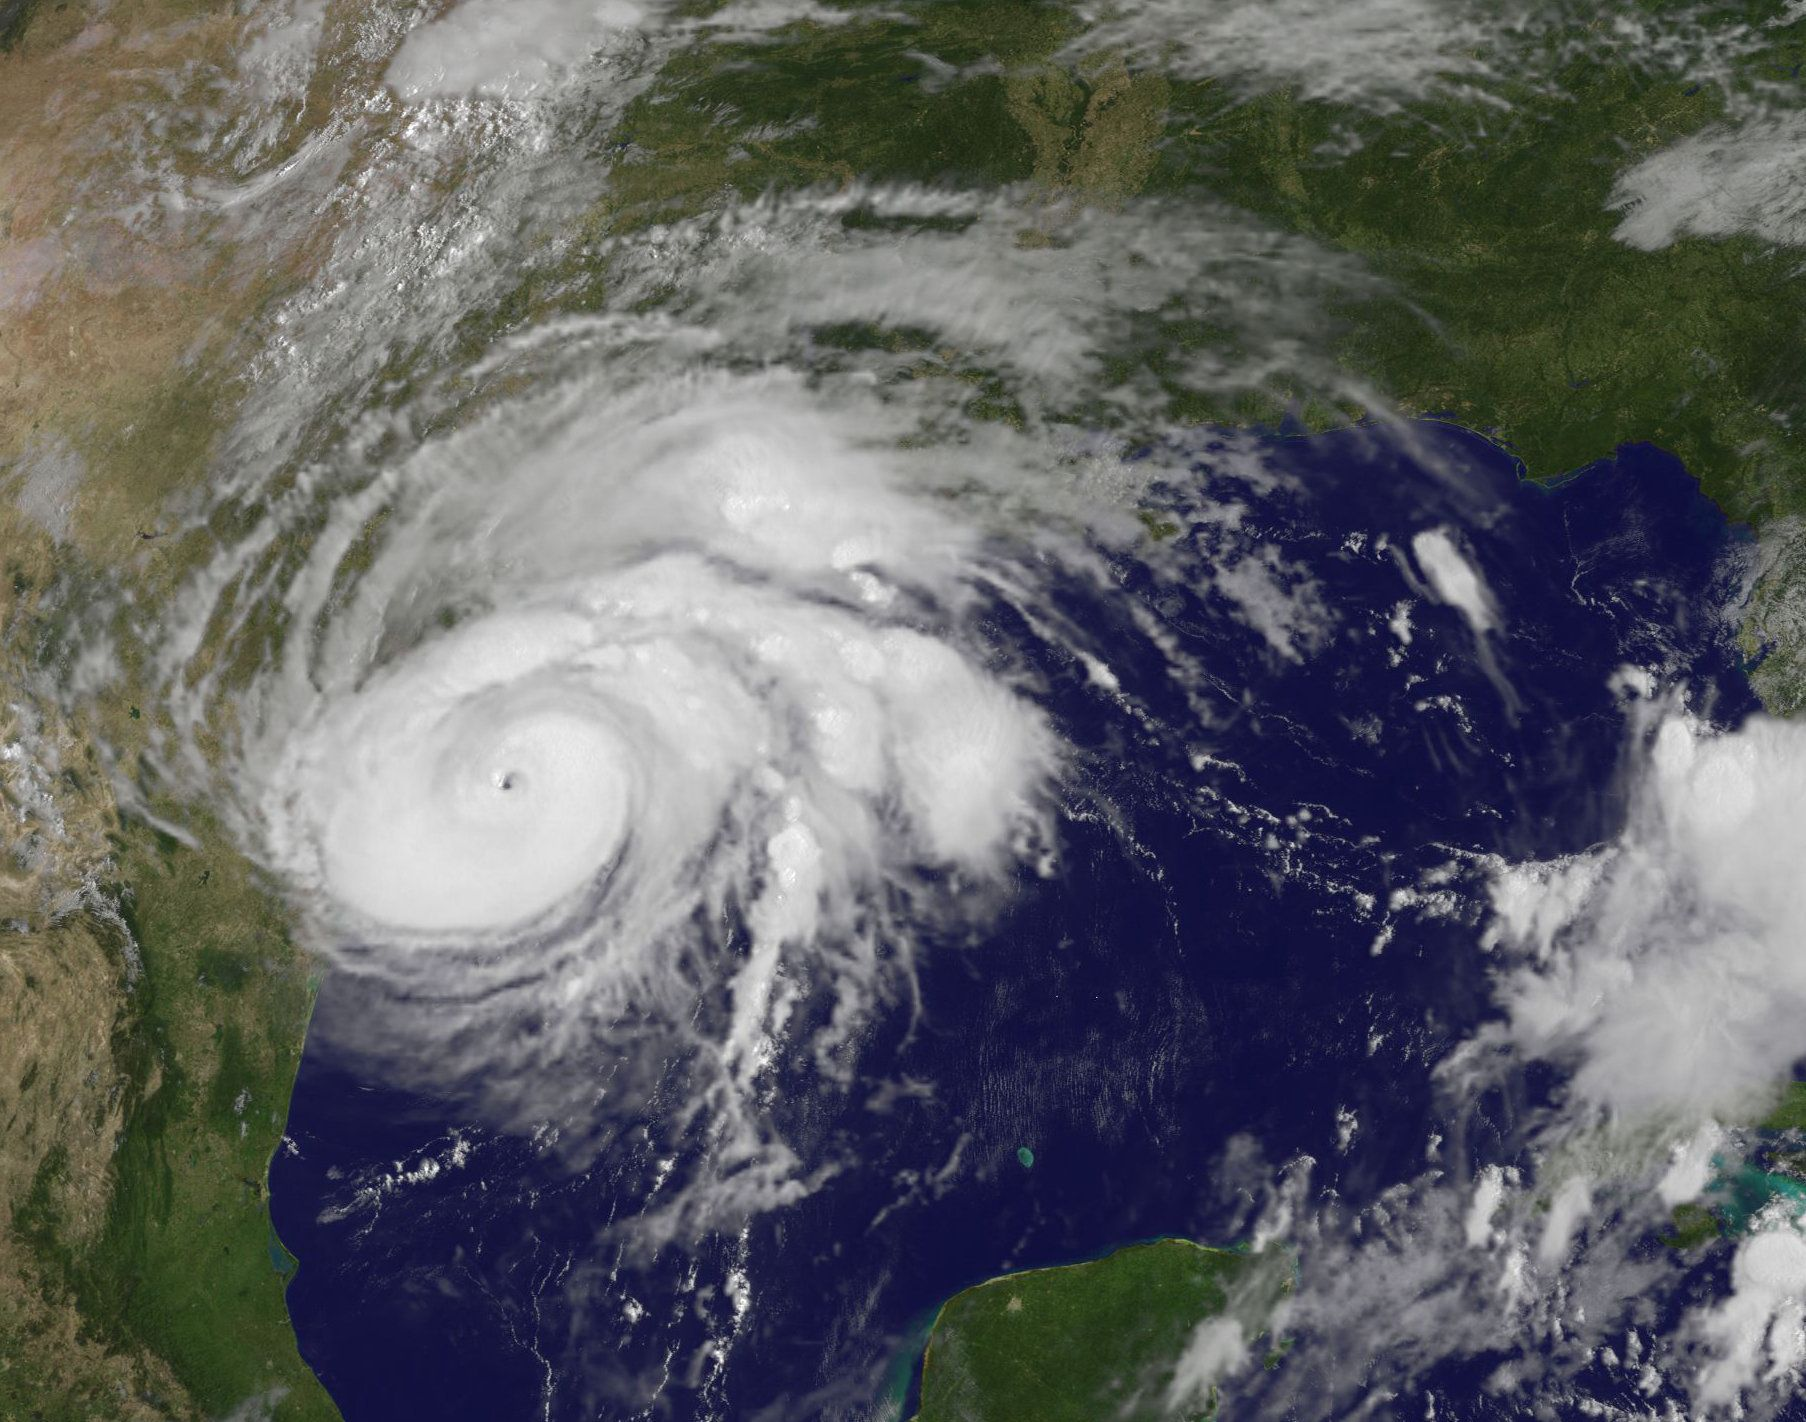 UNITED STATES - AUGUST 25: In this NOAA handout image, NOAA's GOES East satellite capture of Hurricane Harvey shows the storm's eye as the storm nears landfall at 10:07 a.m. EDT (1407 UTC) on August 25, 2017 in the southeastern coast of Texas. (Photo by NASA/NOAA GOES Project via Getty Images)